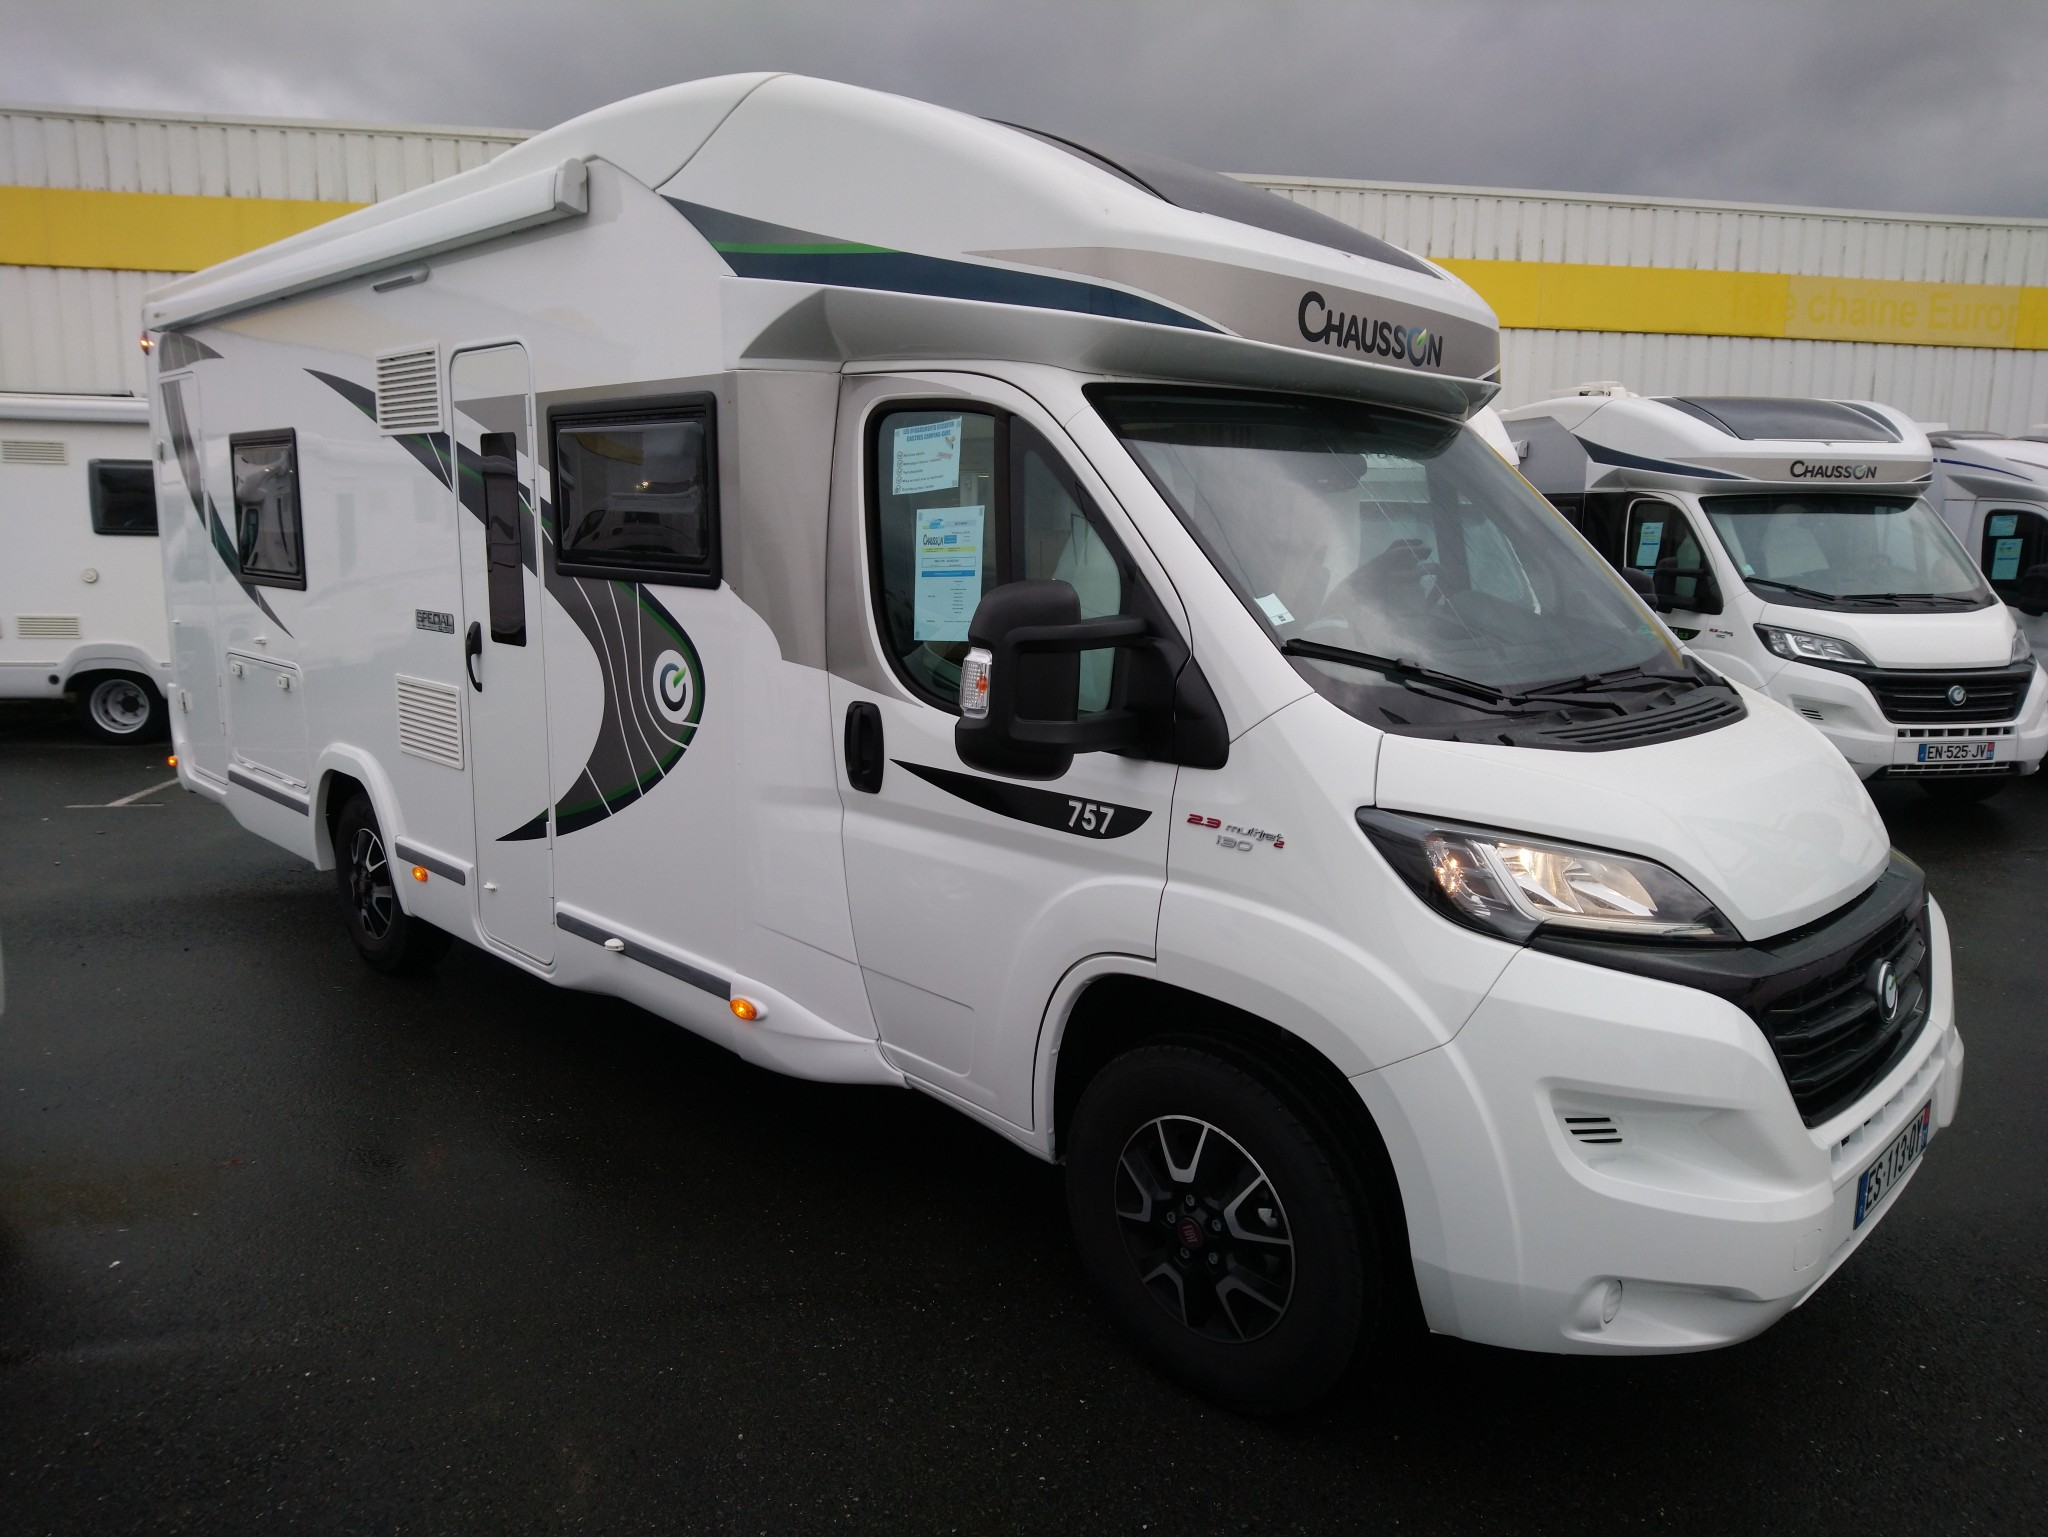 Camping-car CHAUSSON 757 SPECIAL EDITION